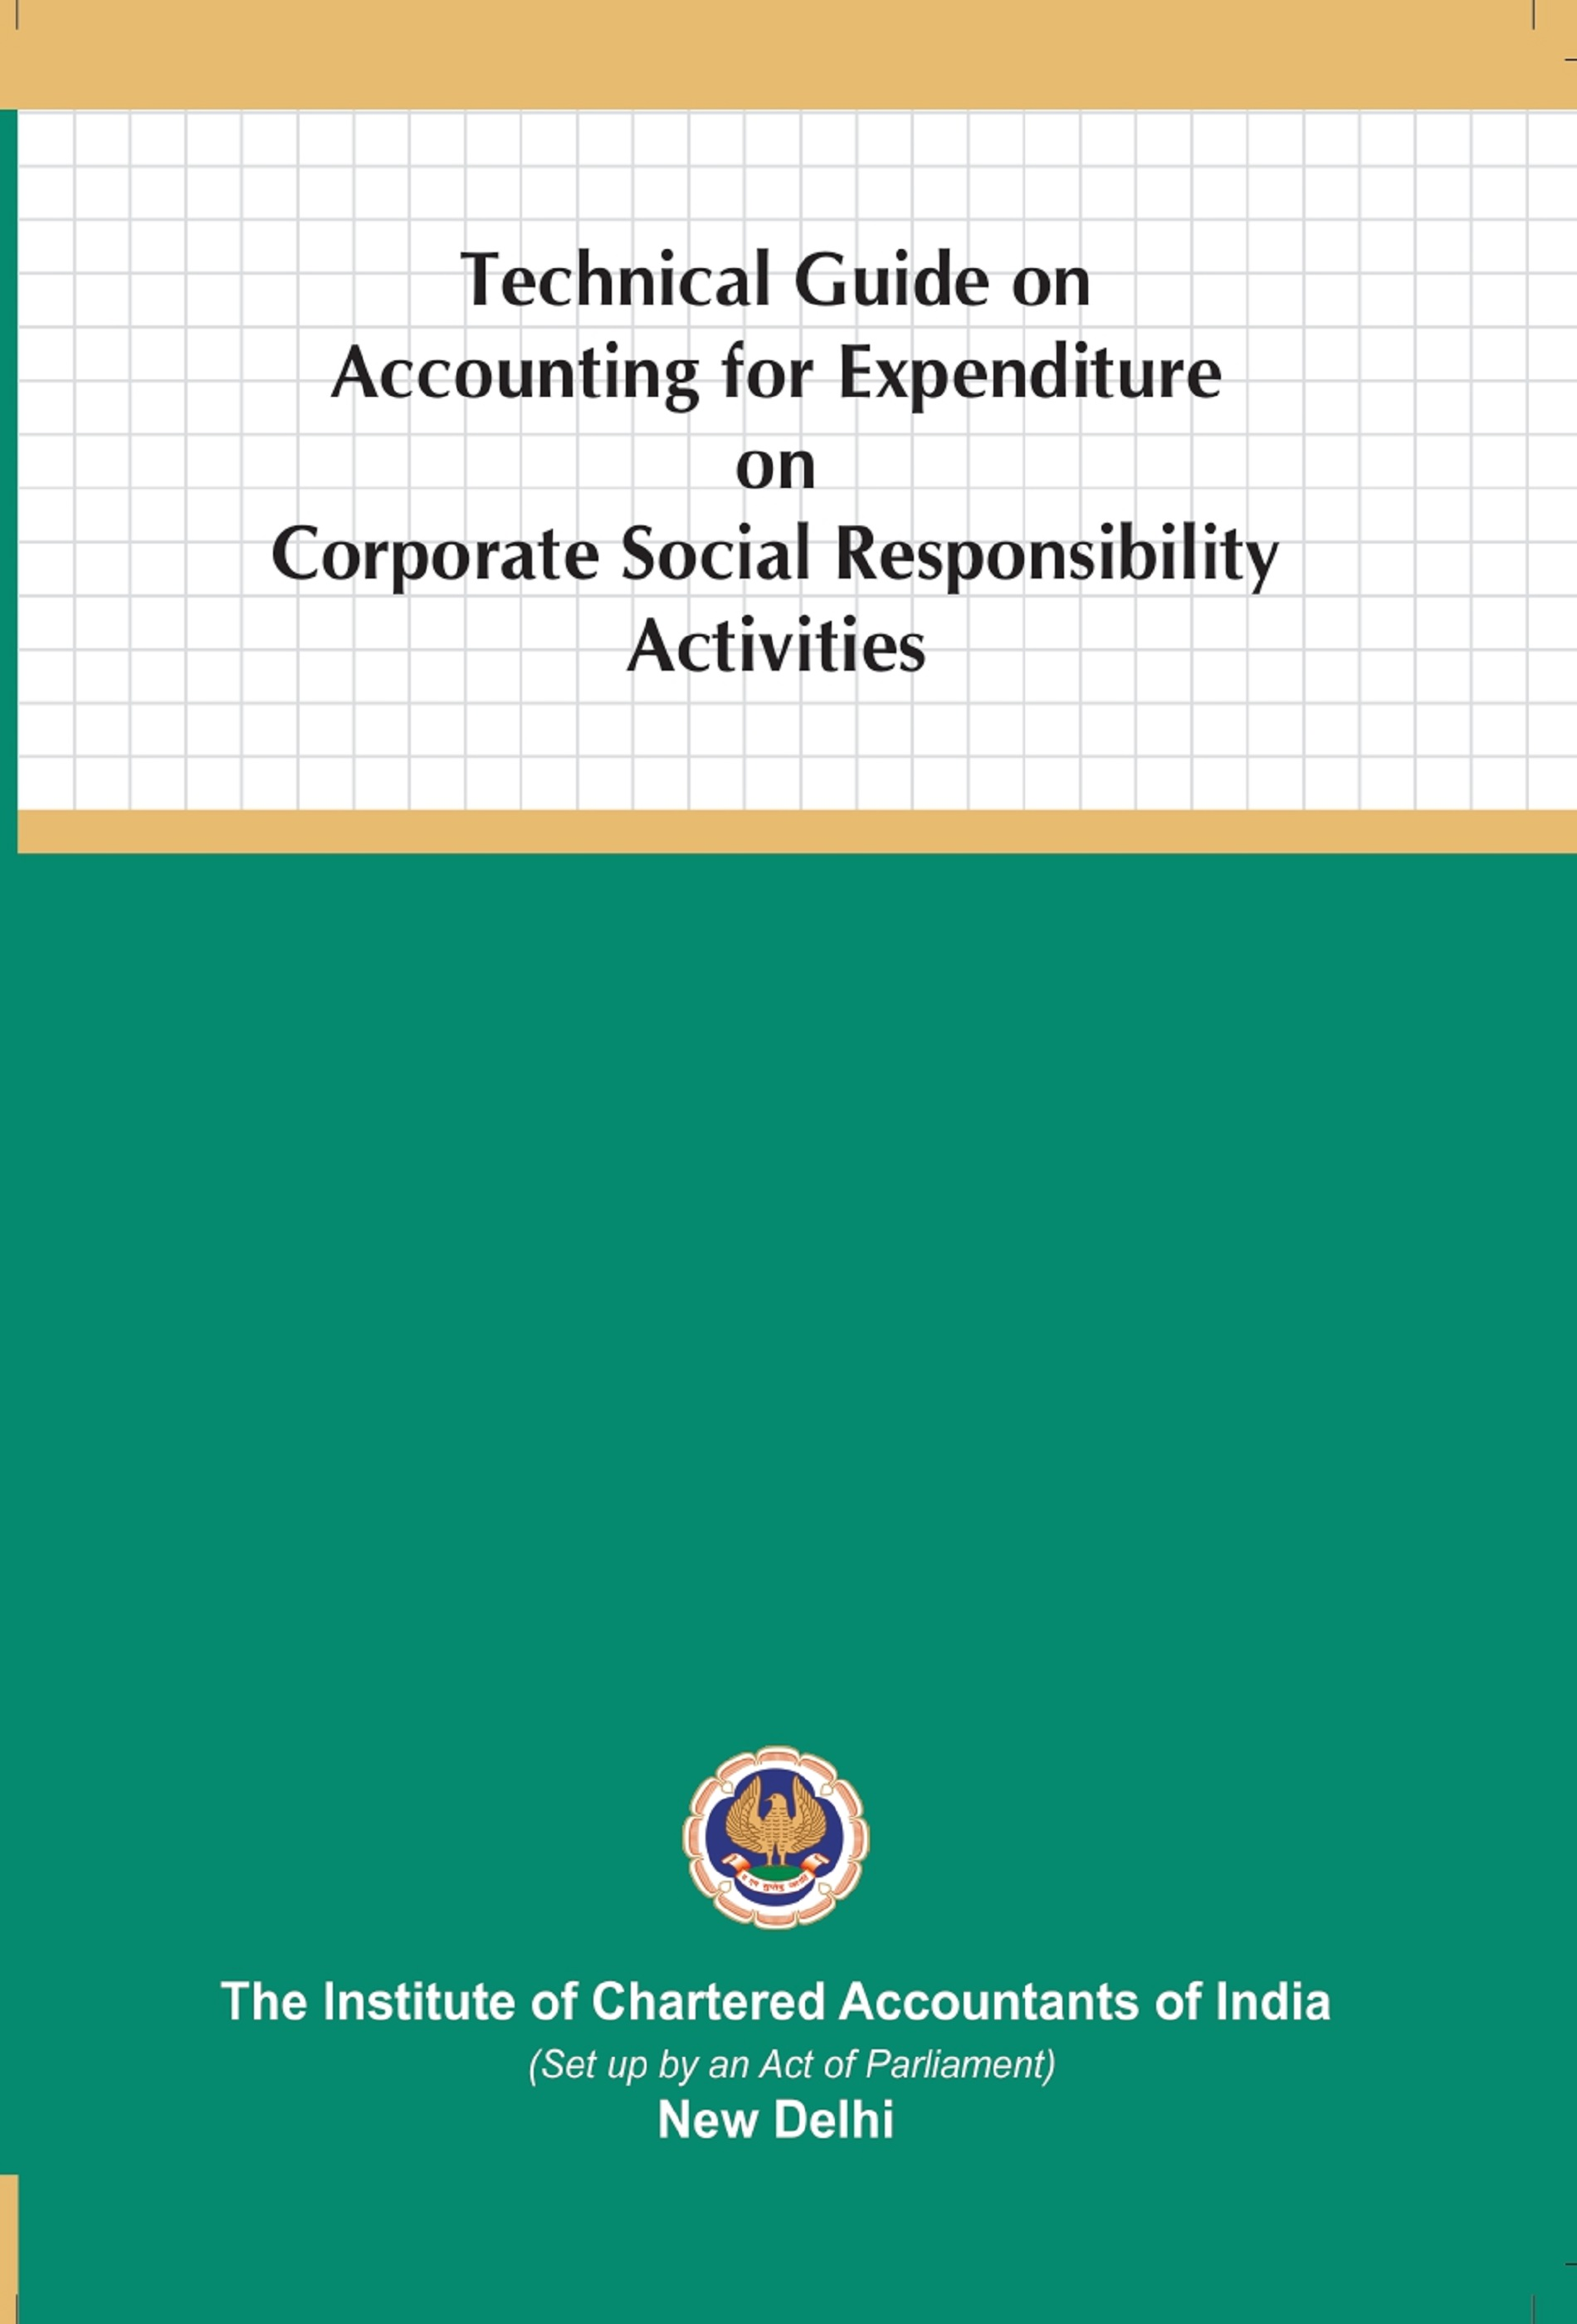 Technical Guide on Accounting for Expenditure on Corporate Social Responsibility Activities (June, 2020)